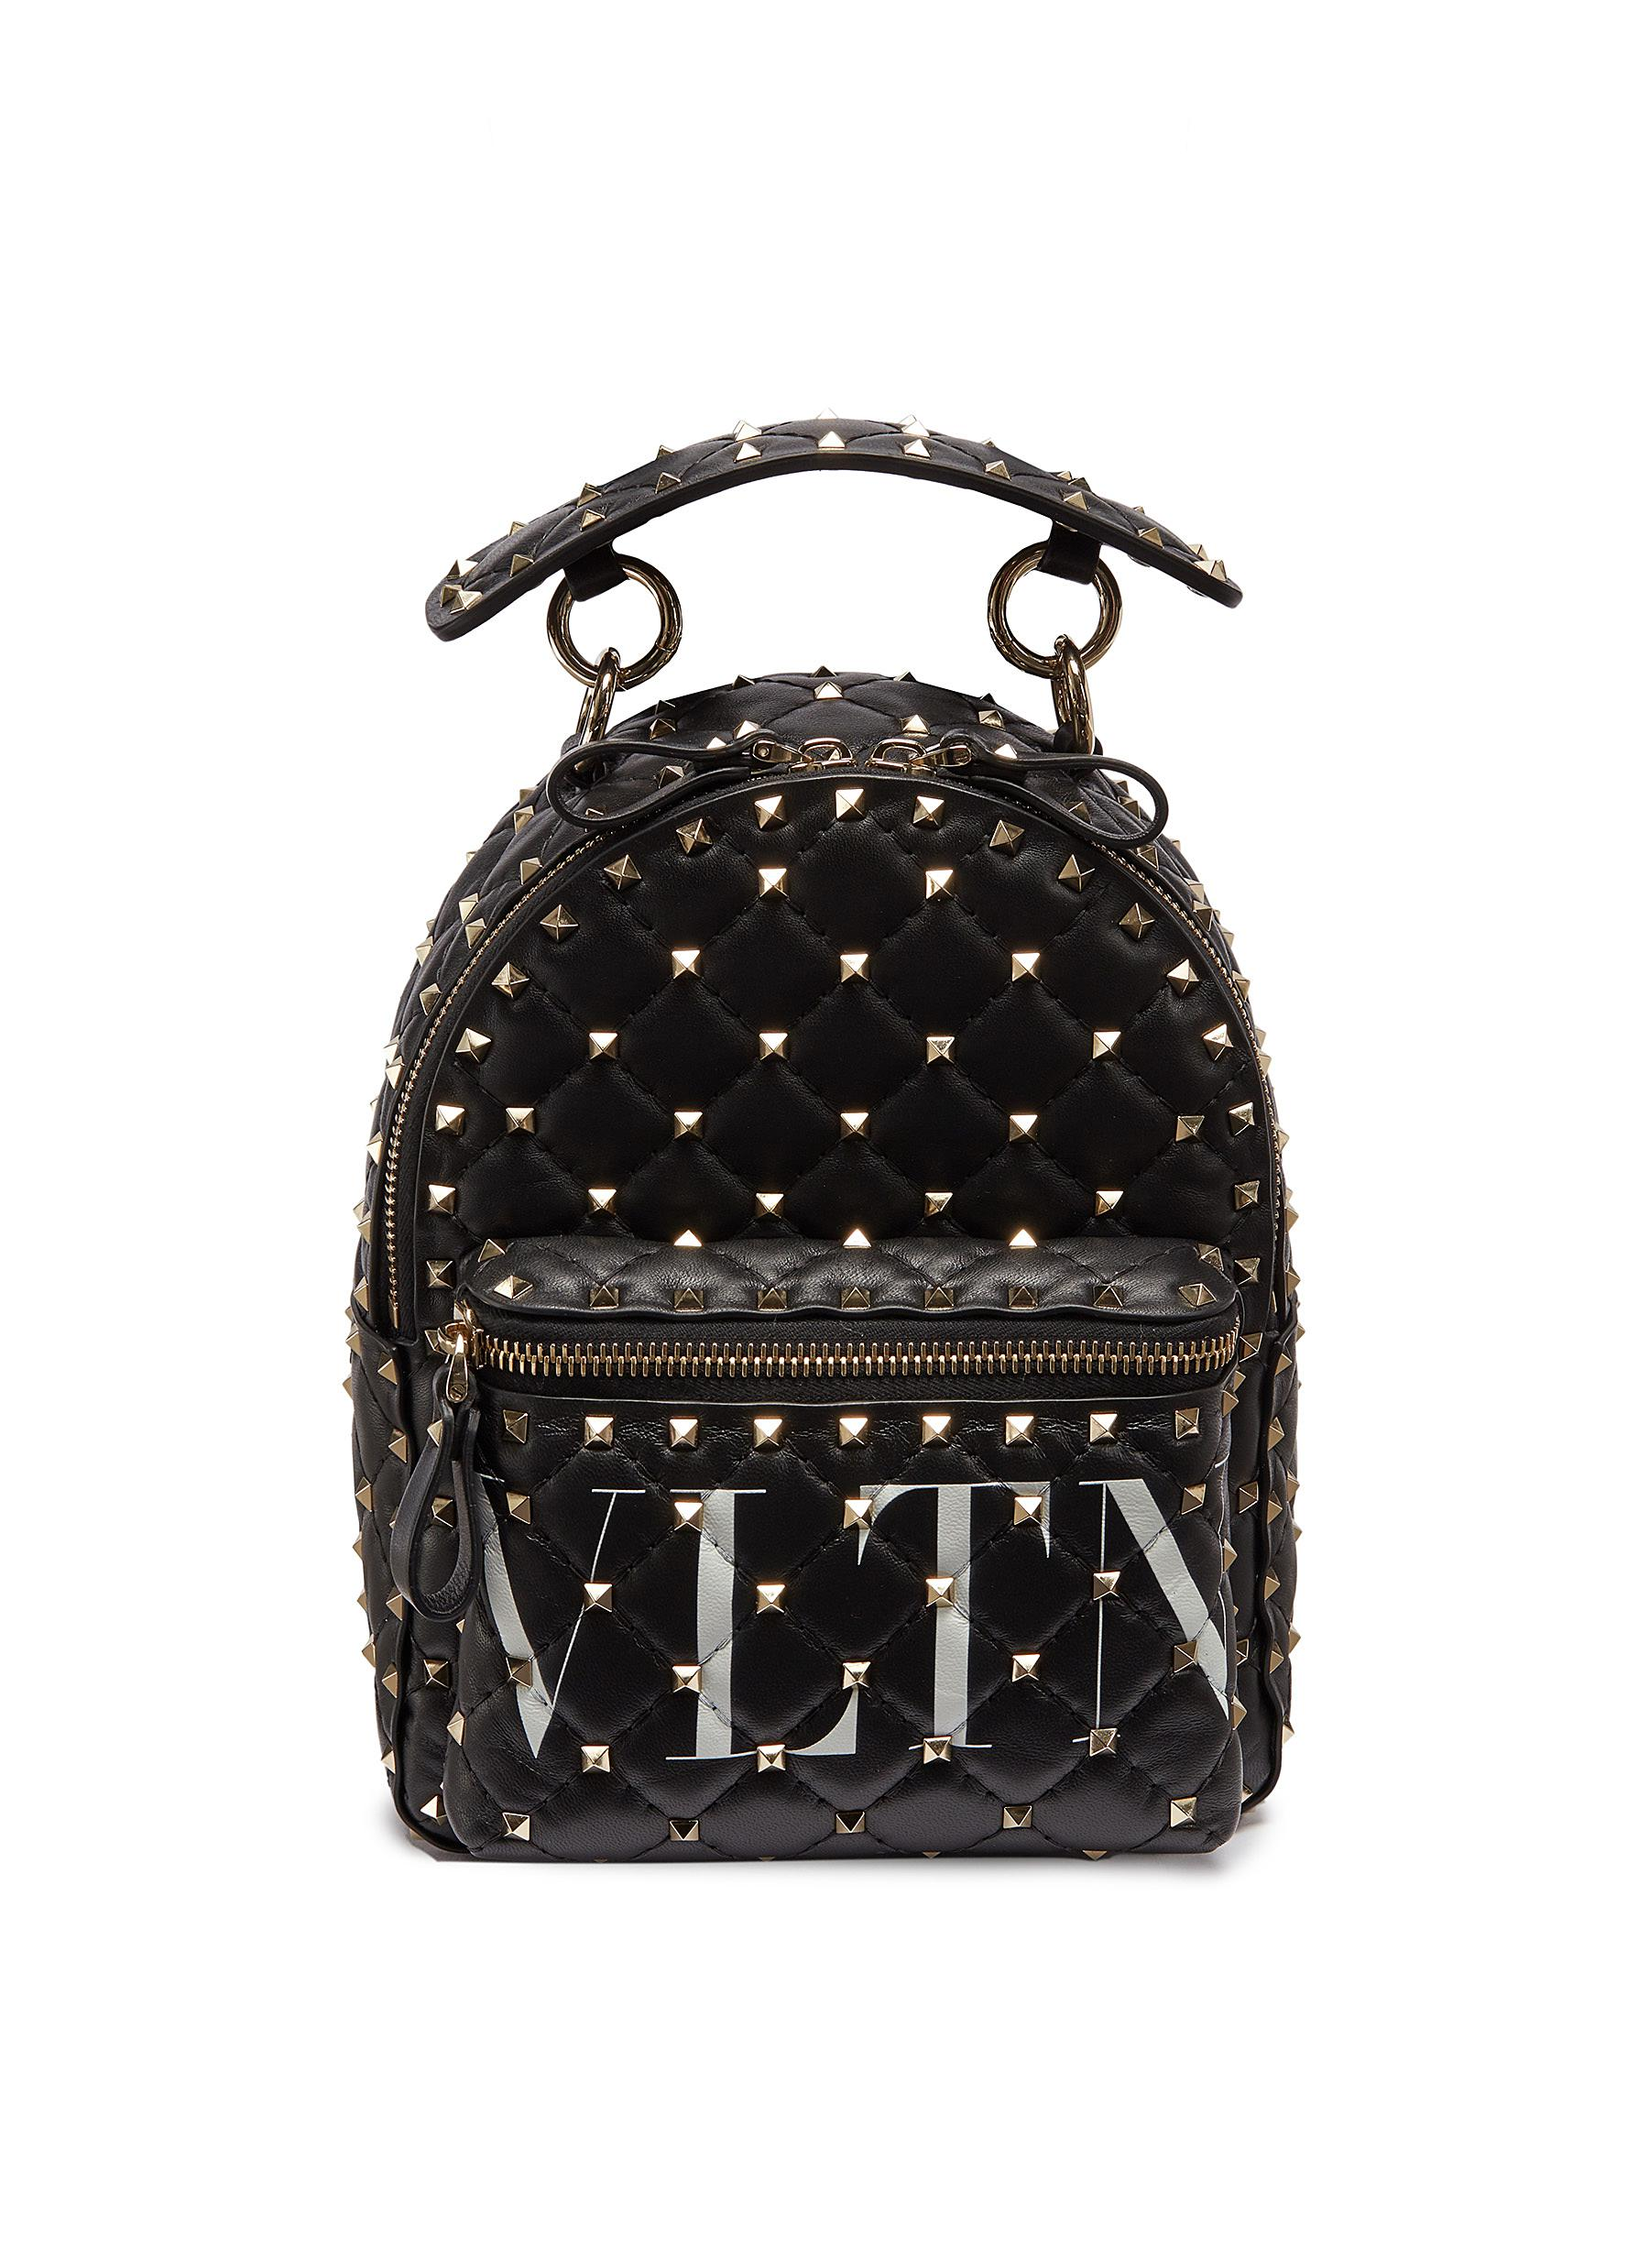 19e03b1aaf VALENTINO | 'Rockstud' logo print mini quilted leather backpack ...